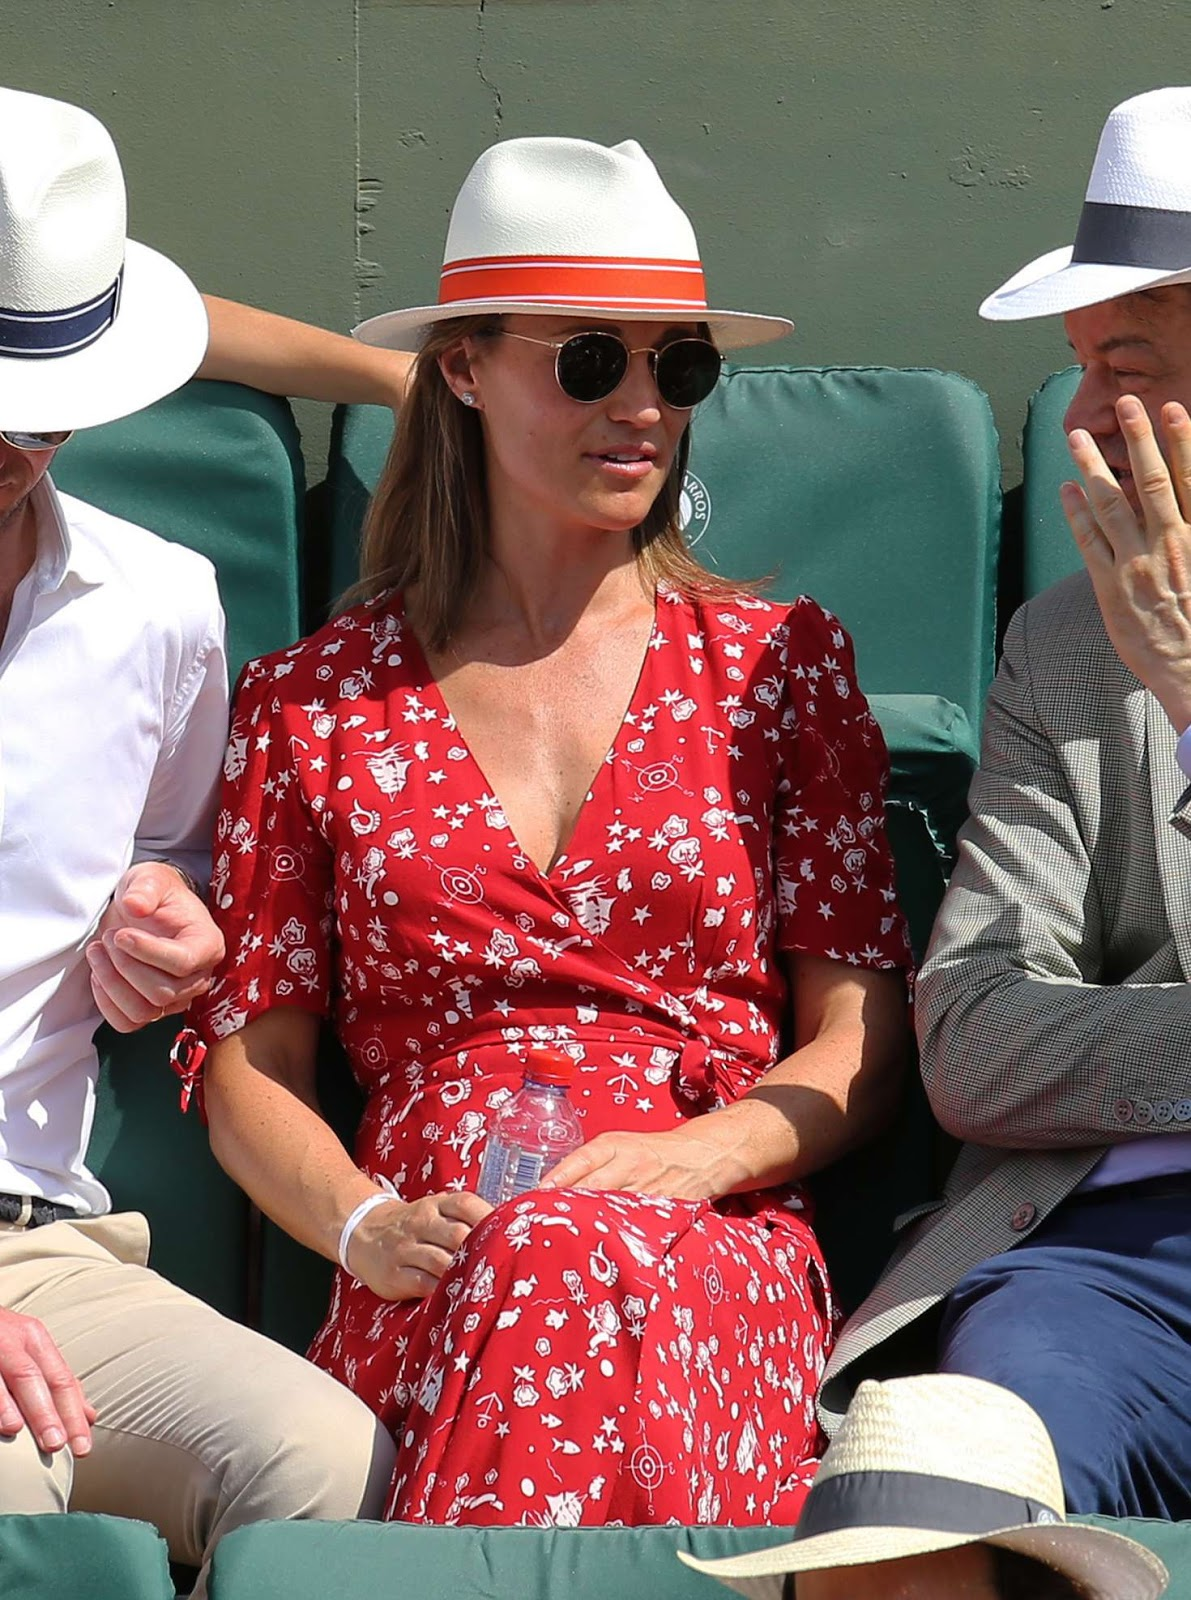 Pippa Middleton at Roland Garros 2018 in Paris